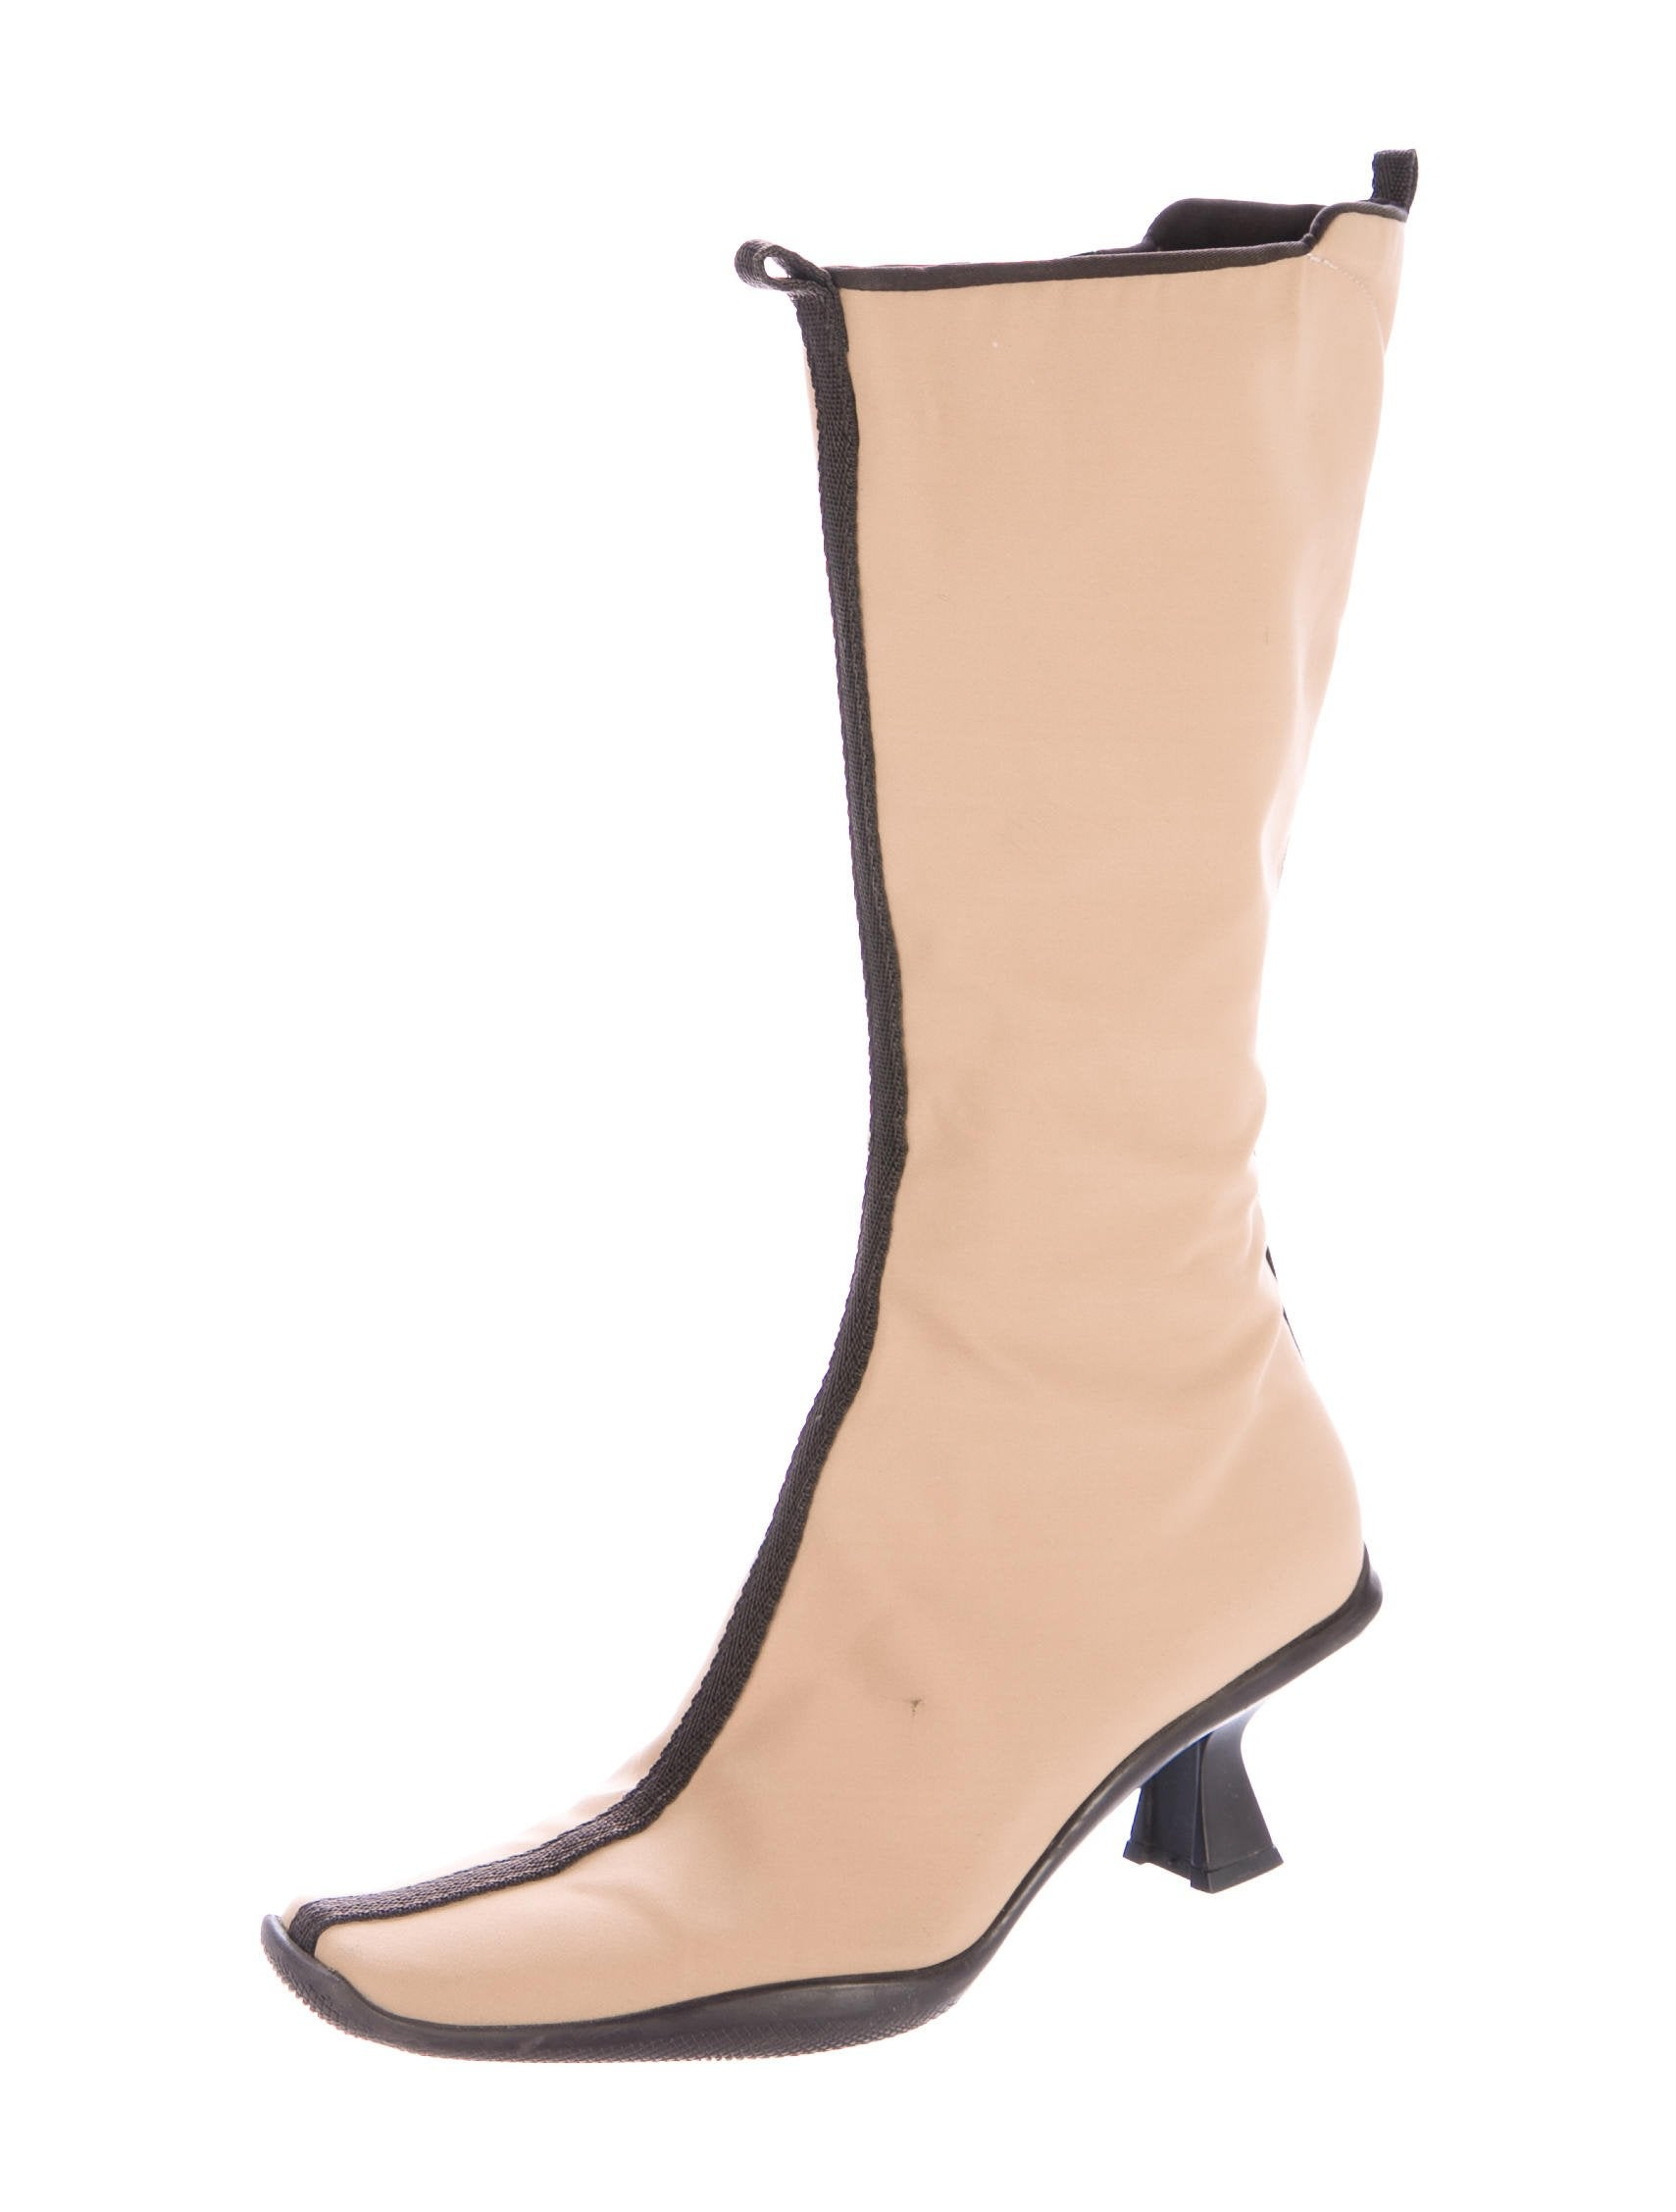 Prada Canvas Mid-Calf Boots latest collections outlet best store to get eastbay for sale xSYu1C8e